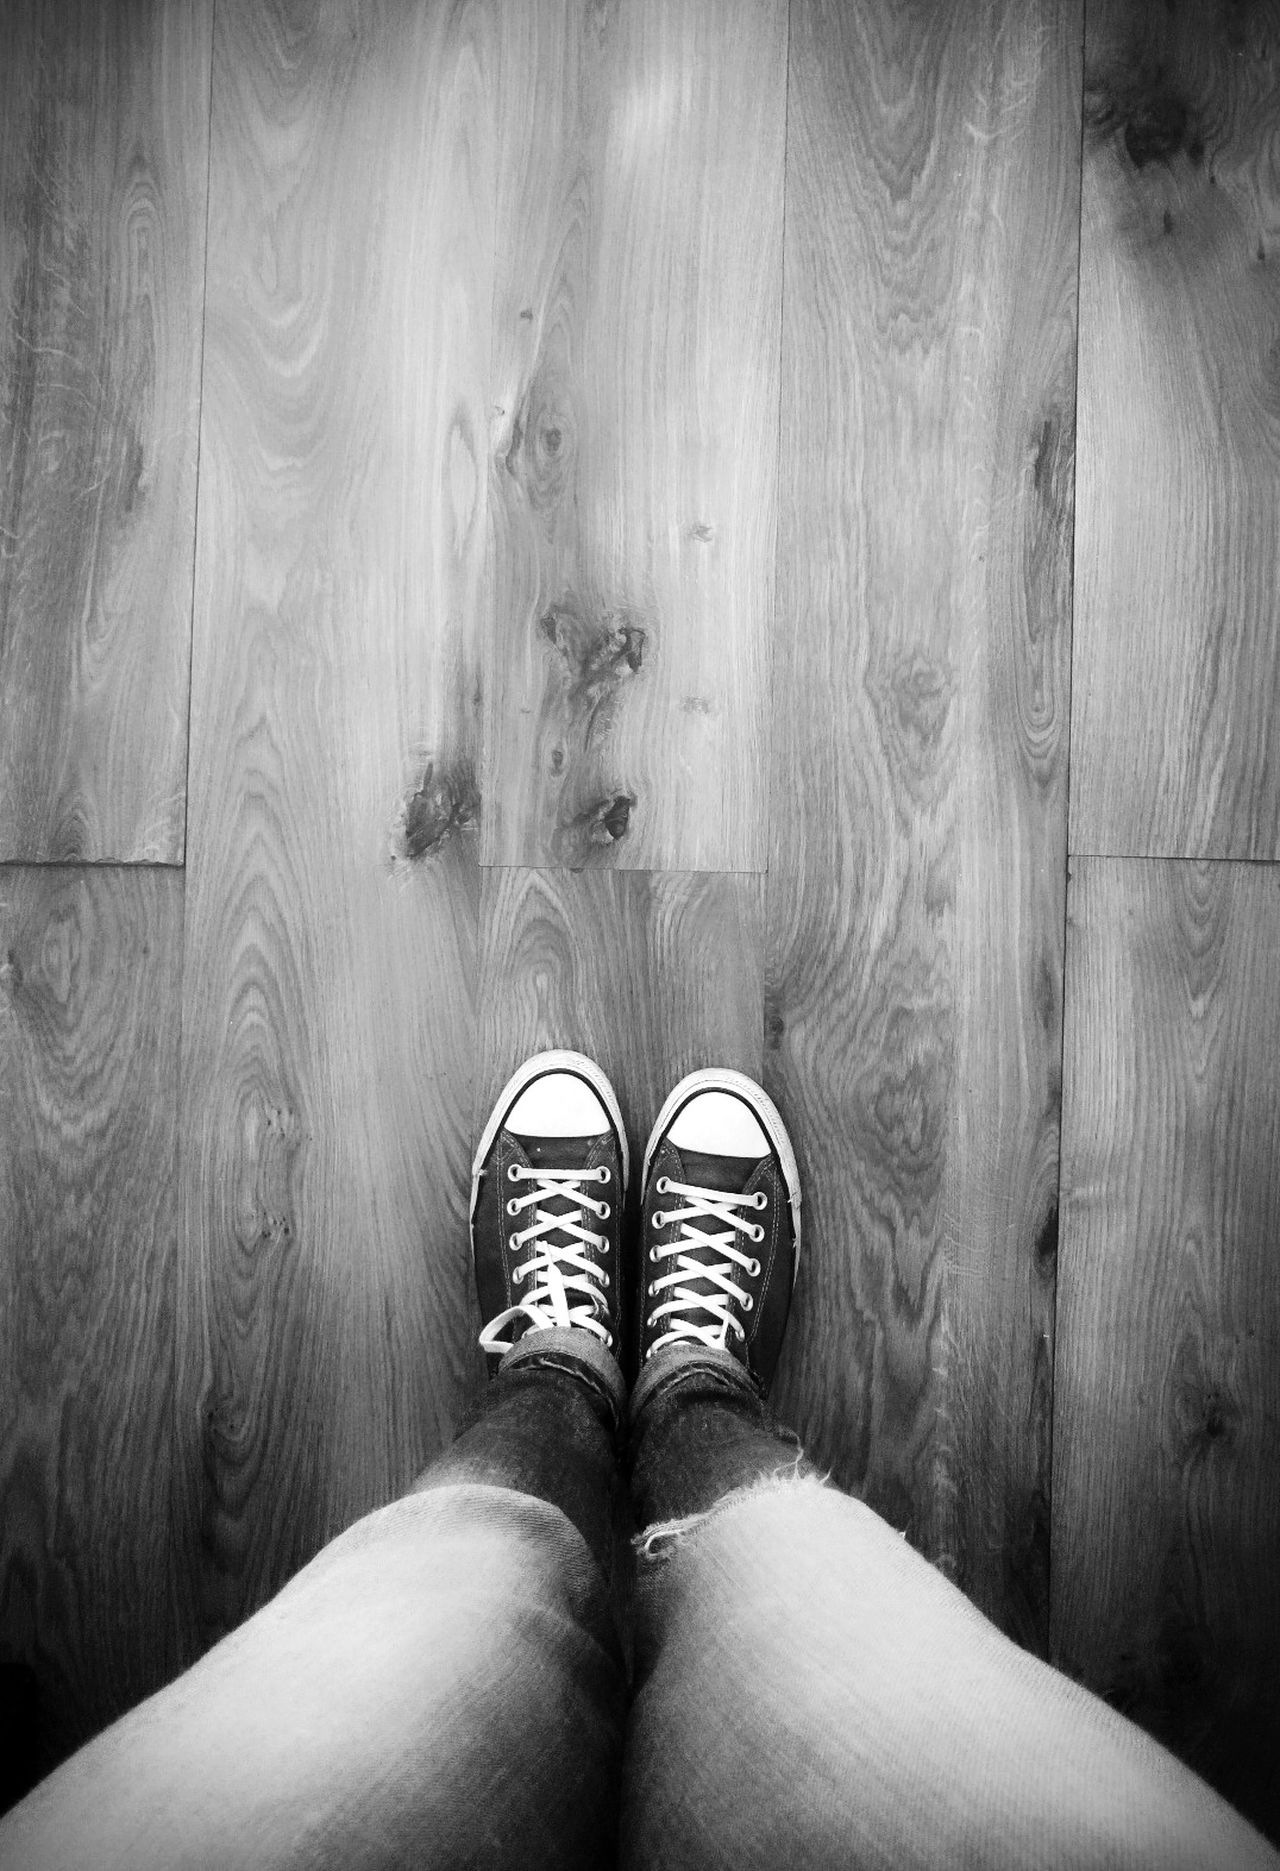 Human Body Part One Person Human Leg Shoe Personal Perspective Blackandwhite Indoors  Black And White Photography